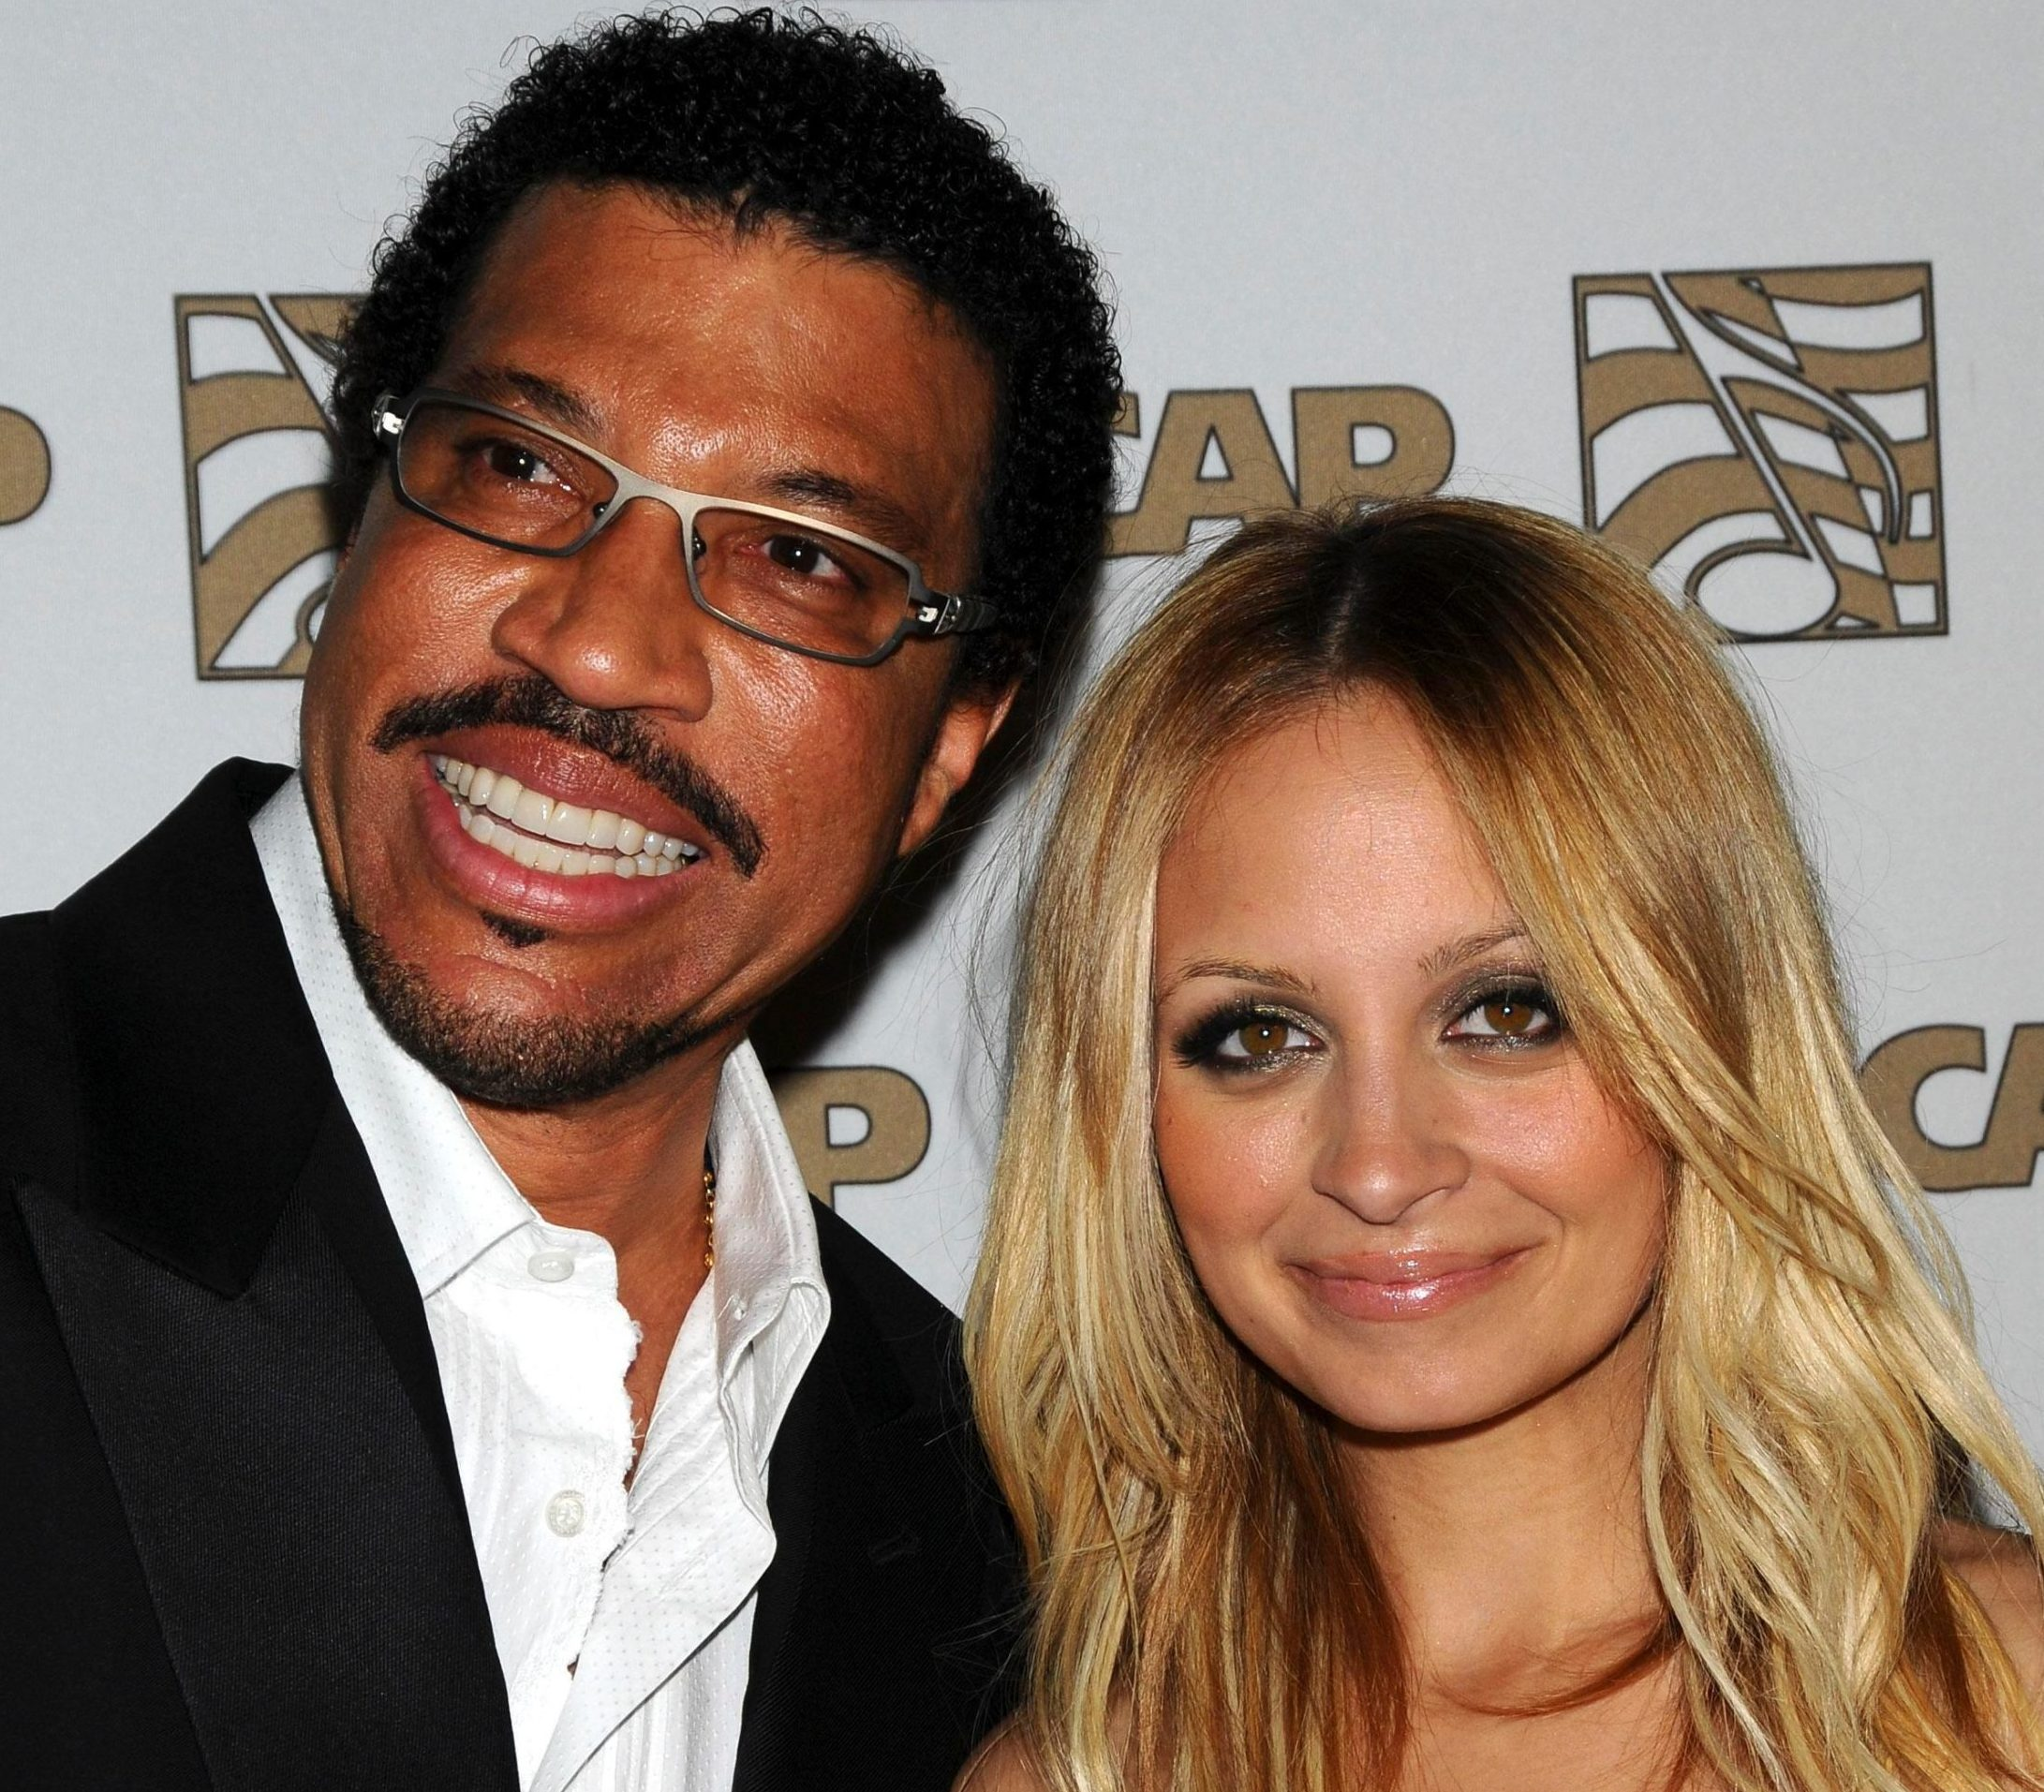 nintchdbpict000004262082 scaled e1609863693425 10 Things You Probably Didn't Know About Lionel Richie